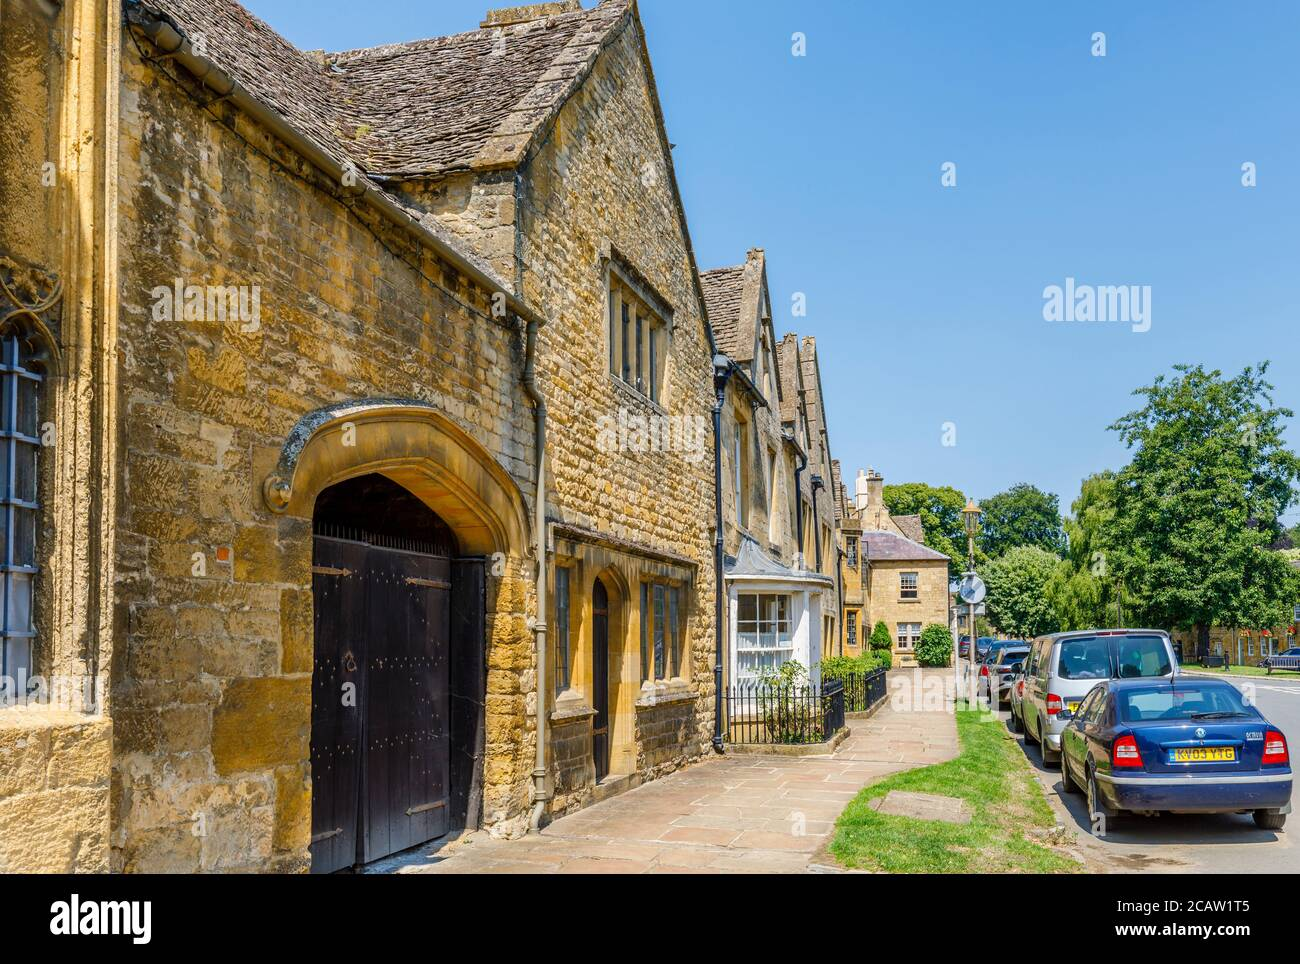 Picturesque roadside traditional Cotswold Stone cottages and buildings in Chipping Campden, a small market town in the Cotswolds in Gloucestershire Stock Photo